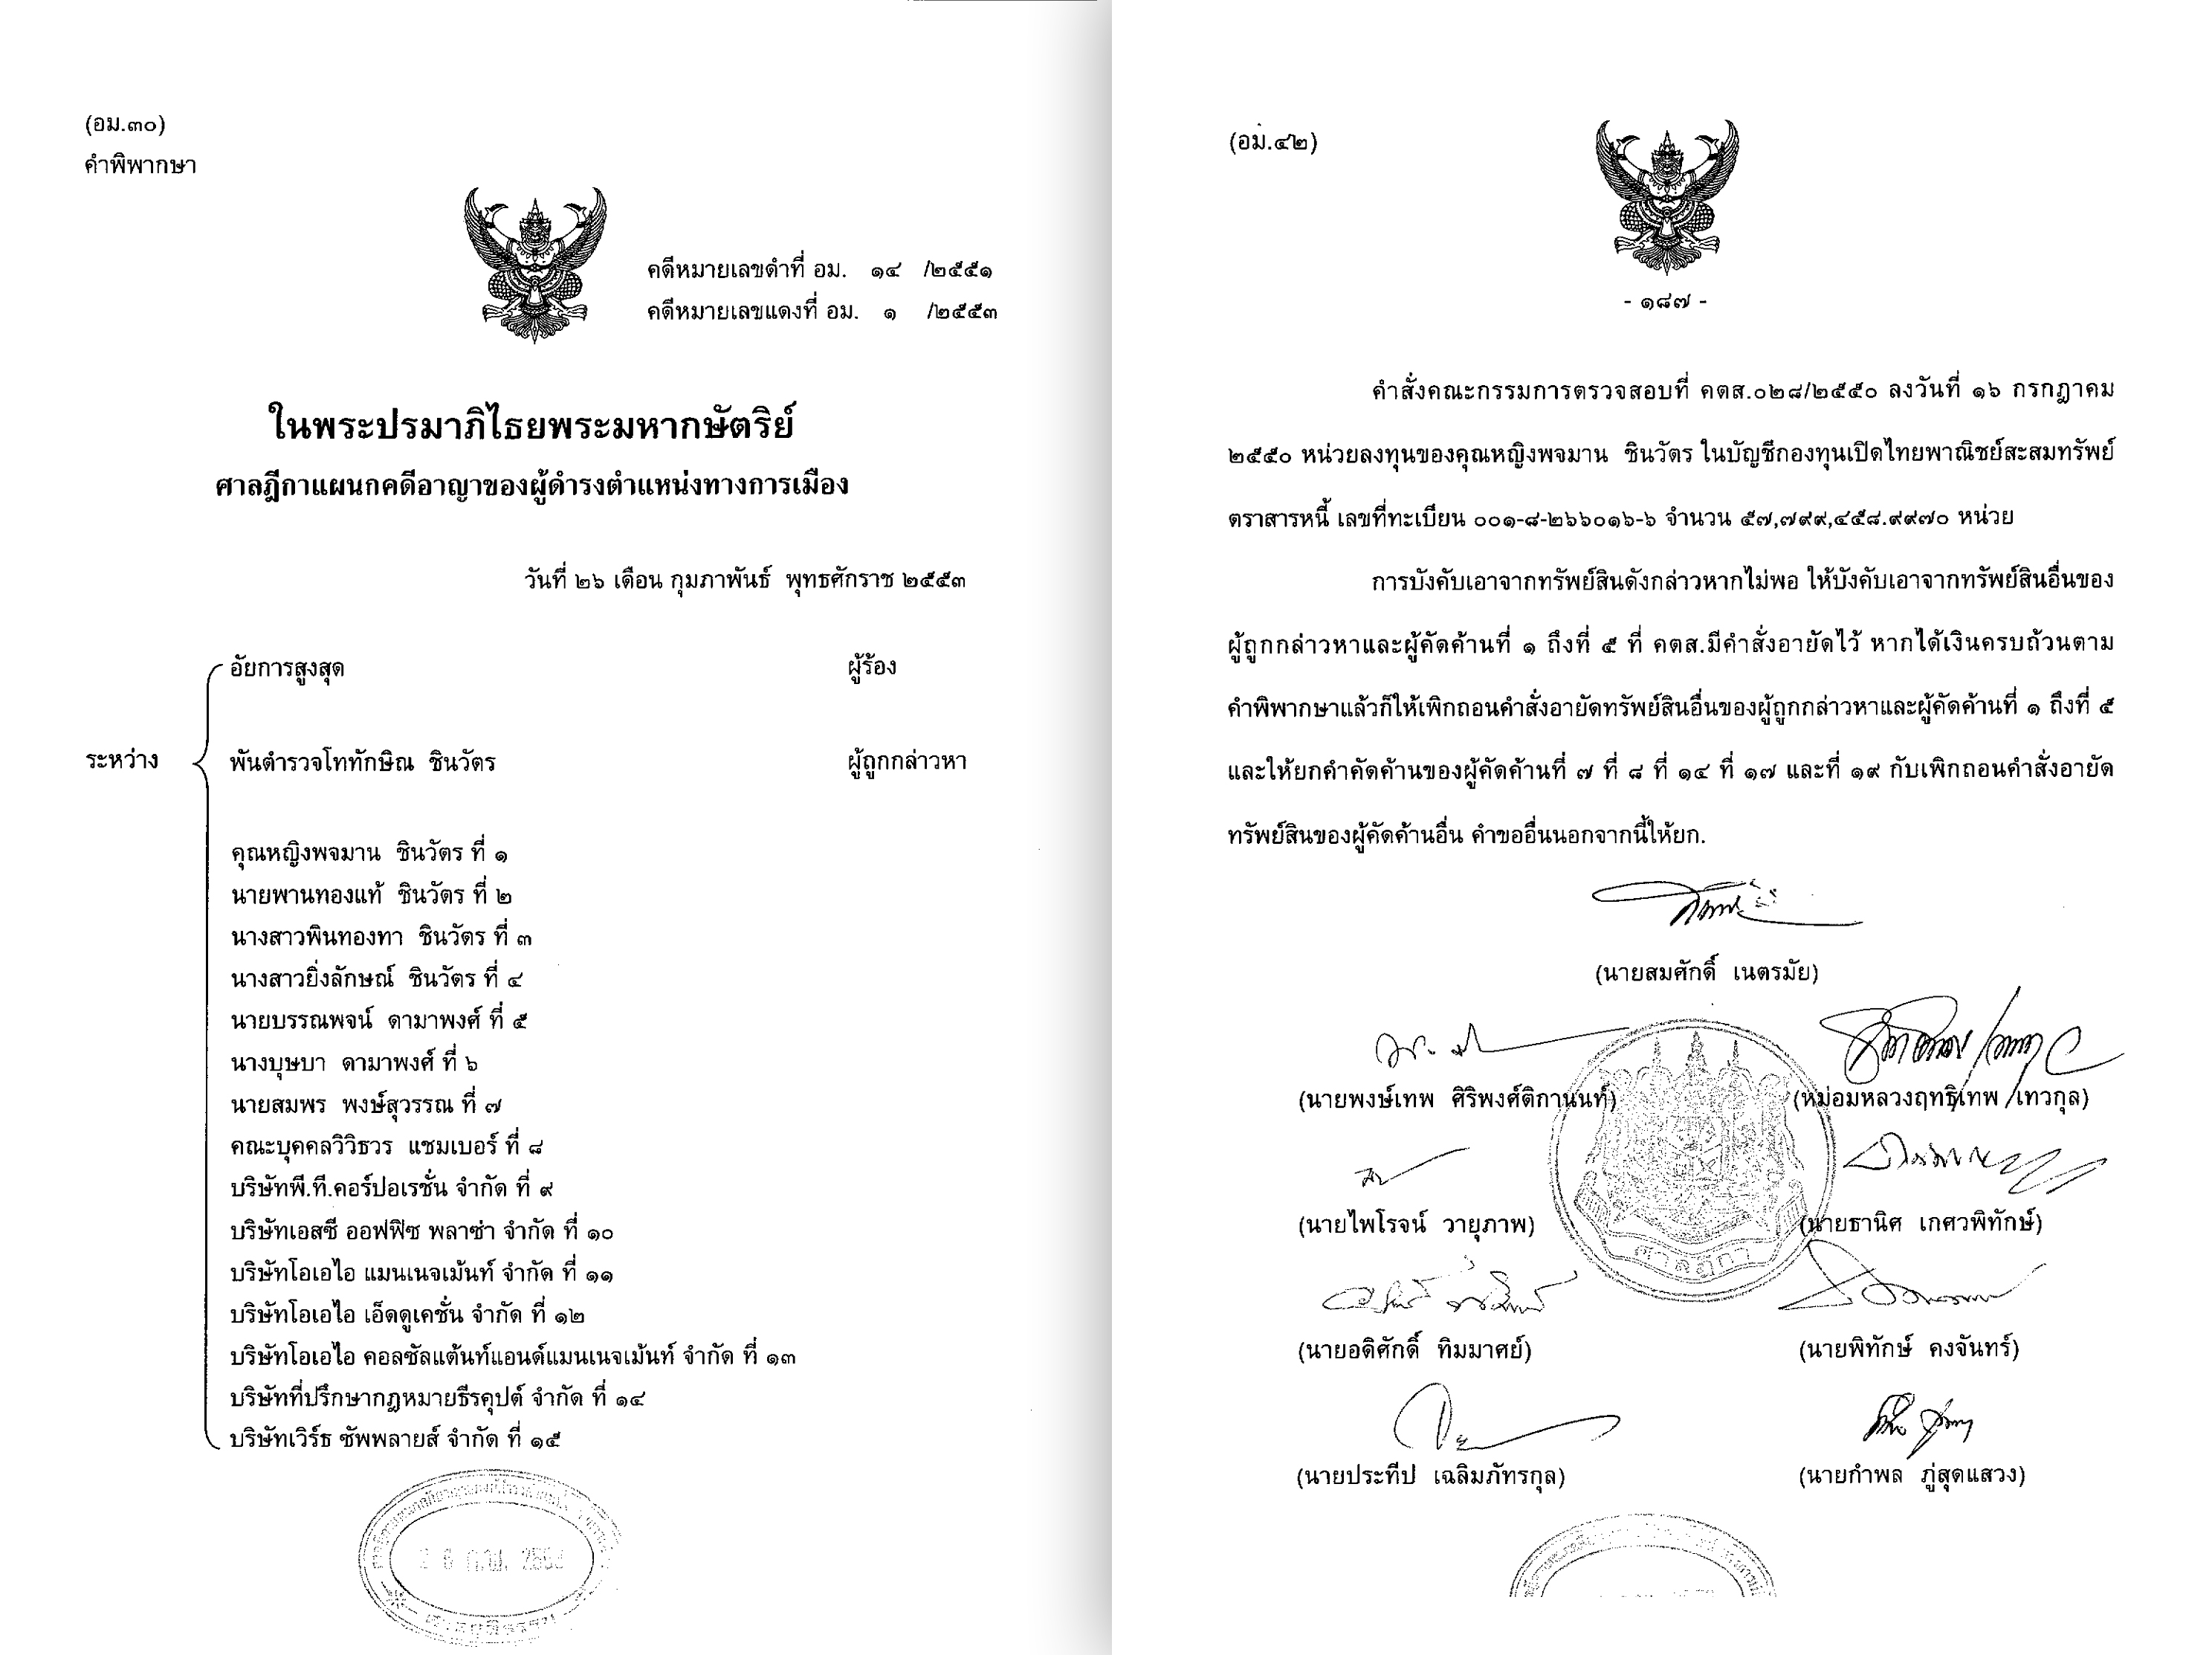 File:Judgment-of-the-Supreme-Court-of-Thailand-26022010-firstlastpages ...